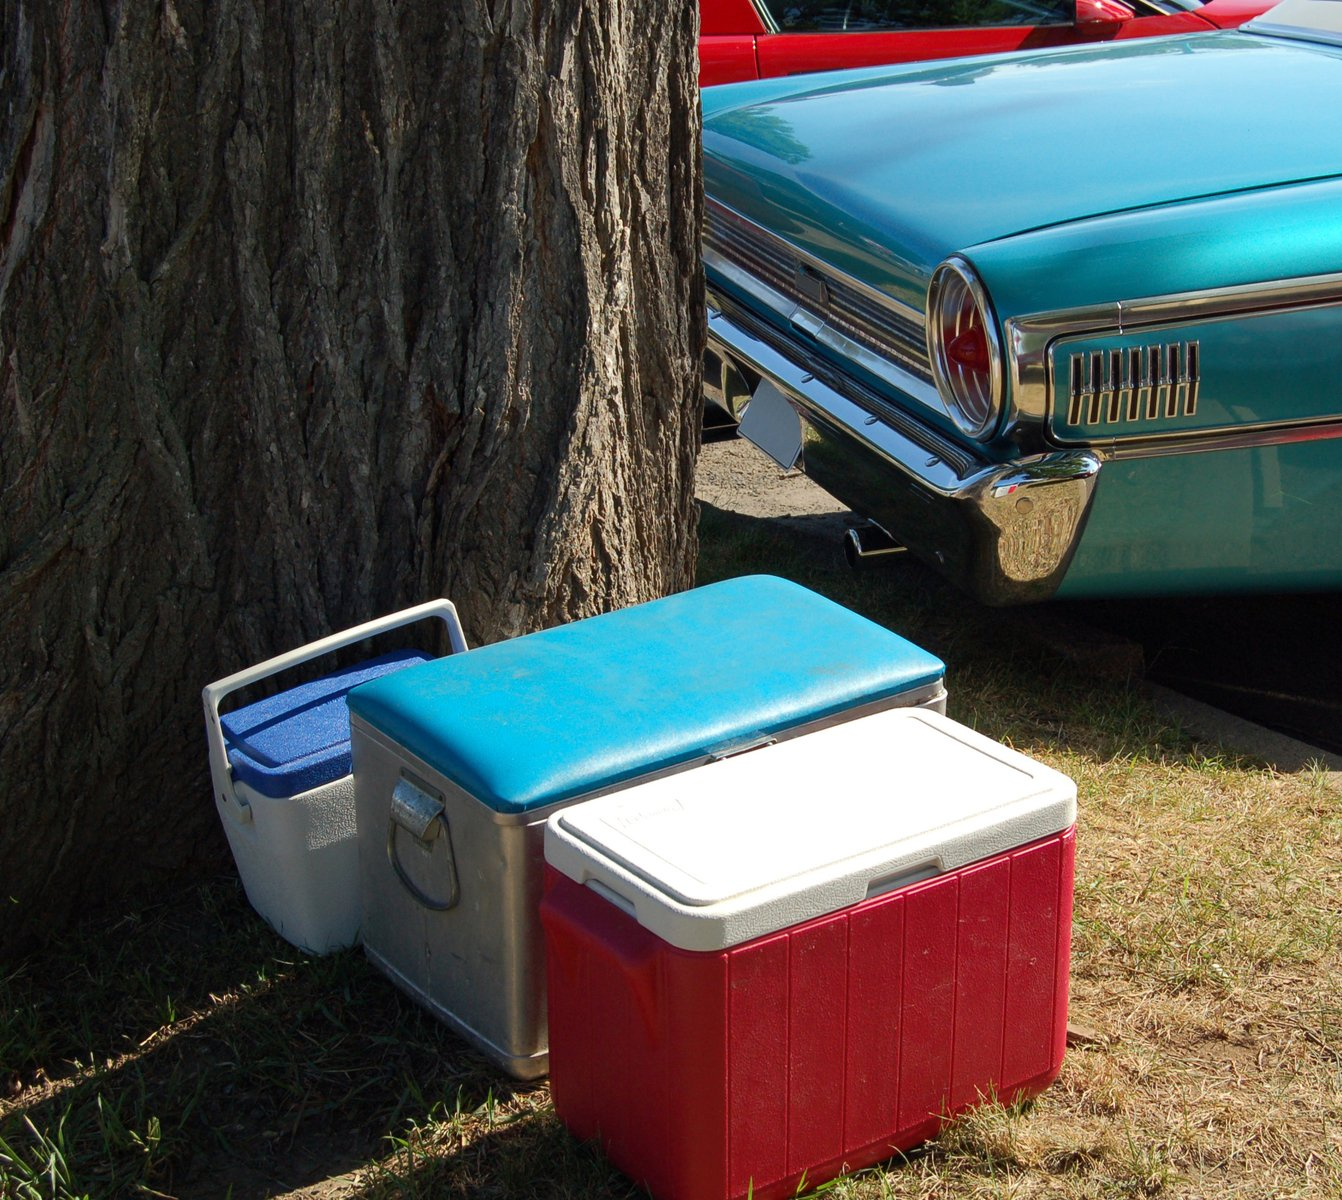 Free Picnic Coolers Stock Photo Freeimages Com